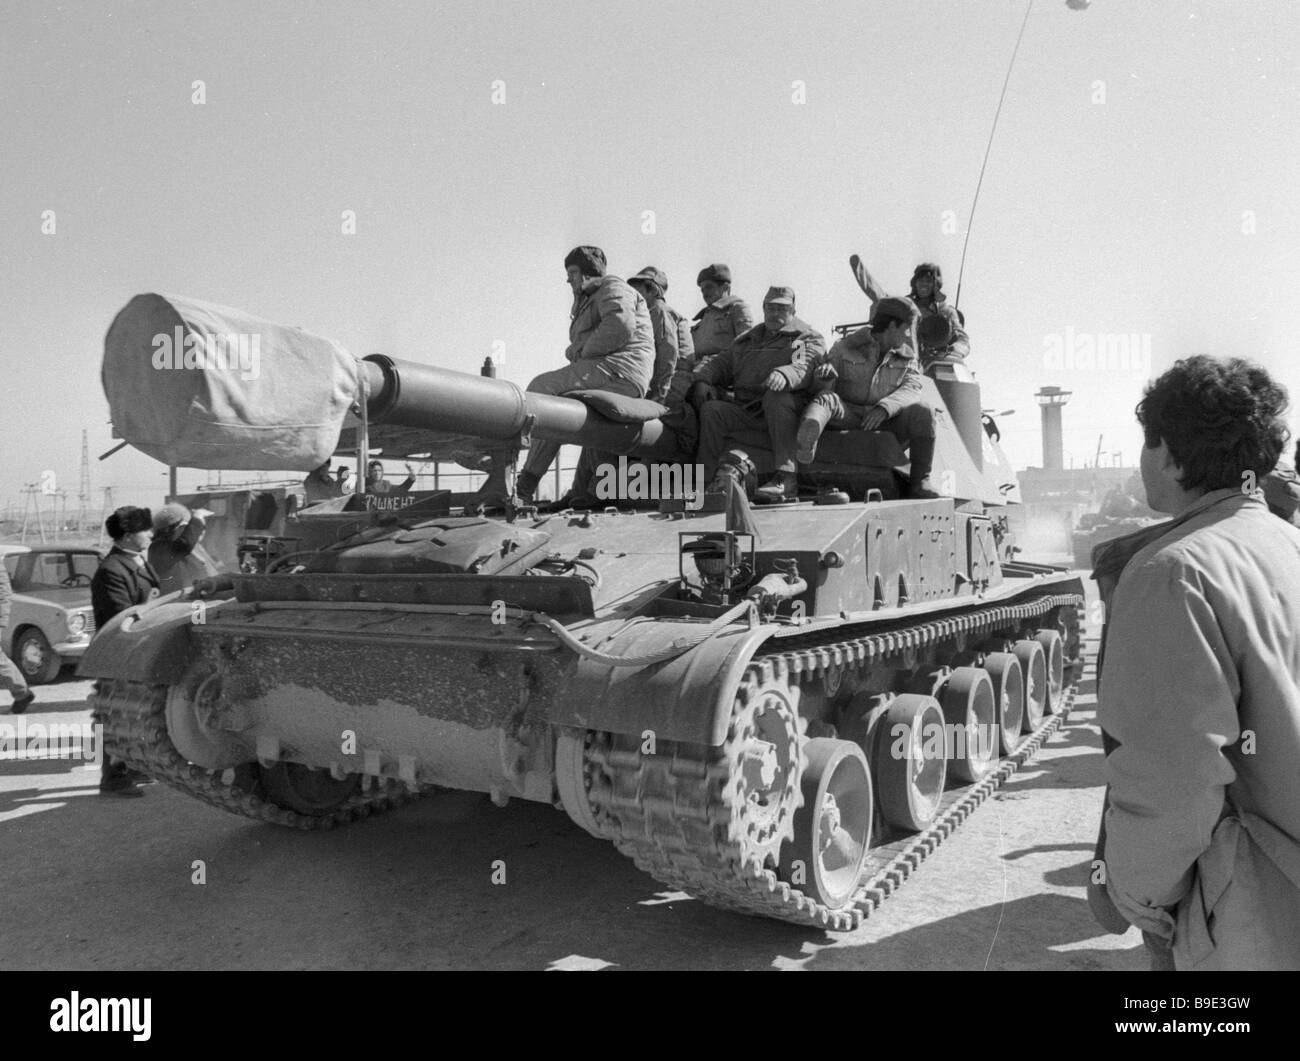 Soviet Afghanistan war - Page 6 The-rest-of-the-soviet-troops-leaving-afghanistan-B9E3GW